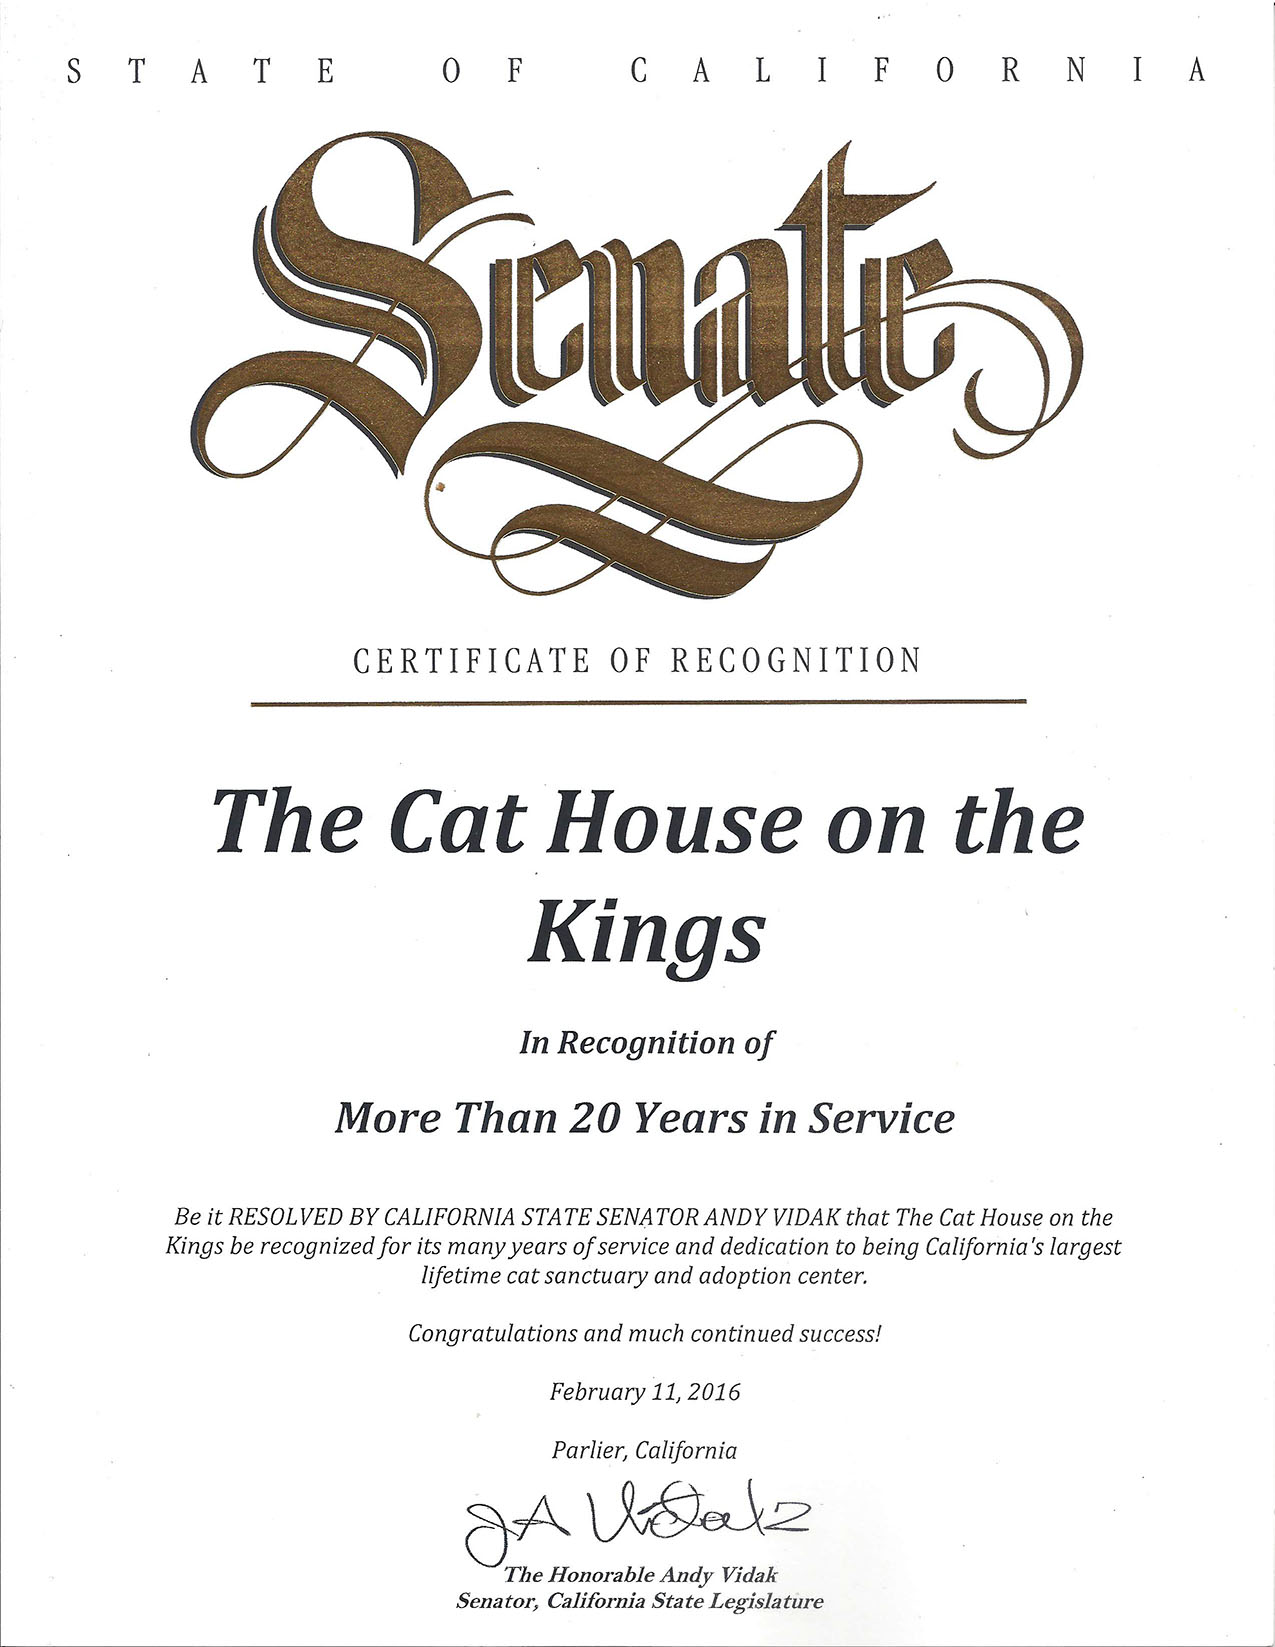 The Cat House awarded a Certificate of Recognition - Click to enlarge